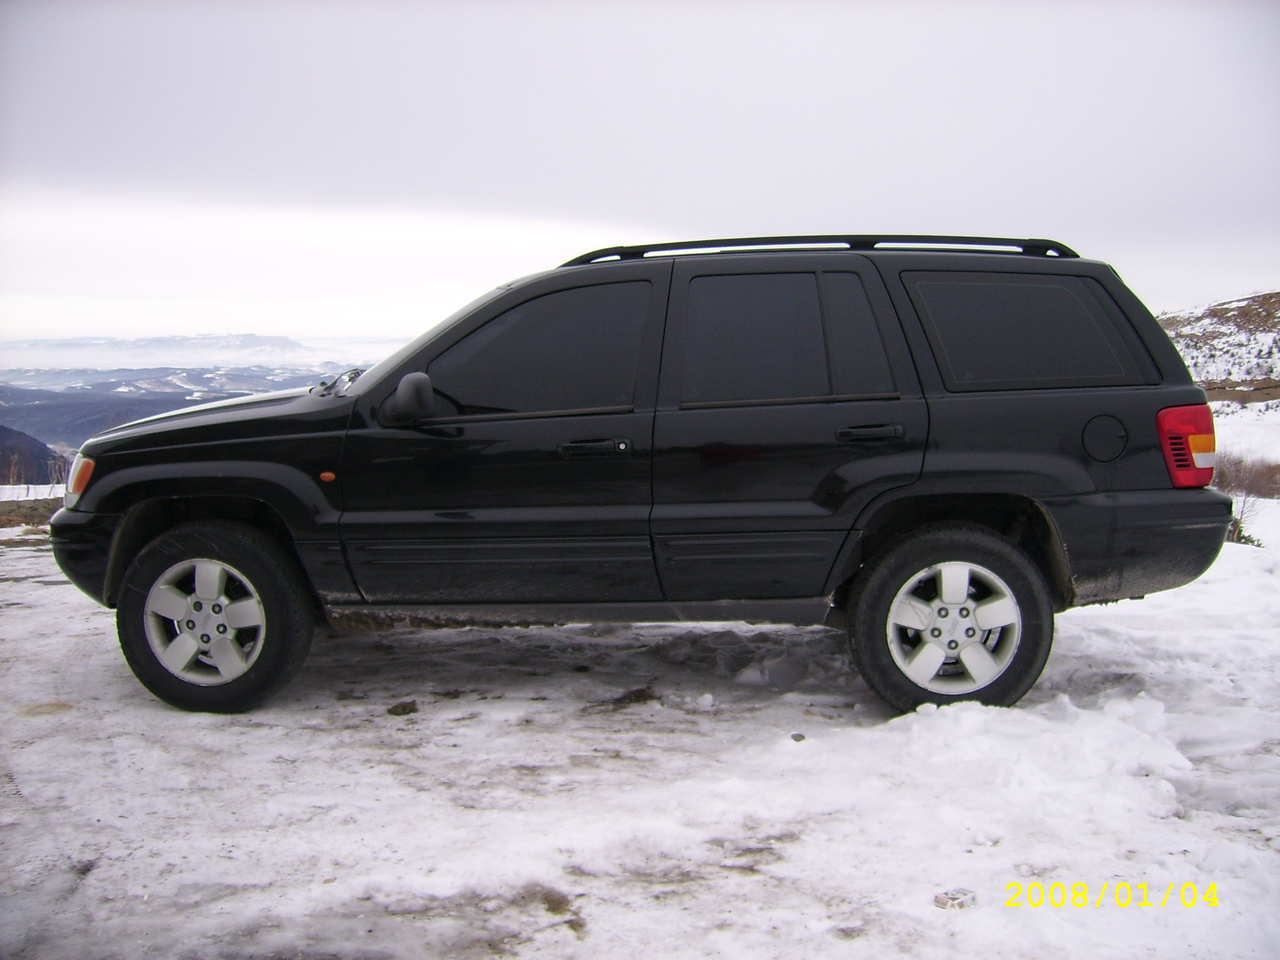 2001 jeep grand cherokee pictures 3100cc diesel automatic for sale. Black Bedroom Furniture Sets. Home Design Ideas